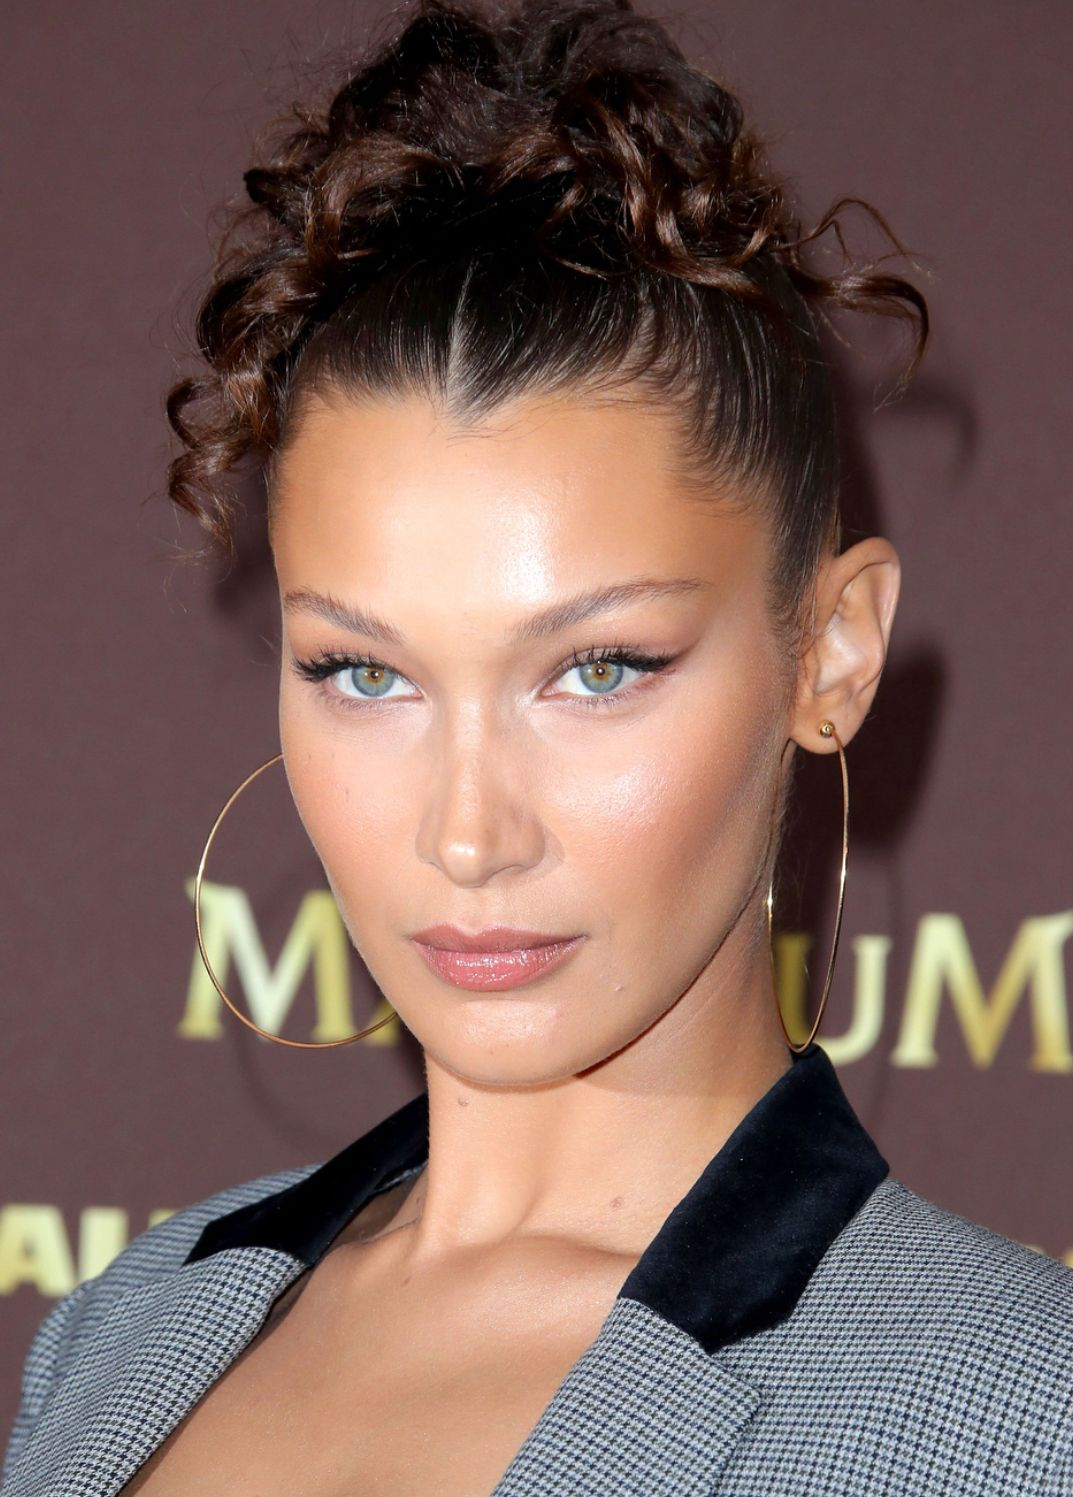 Bella Hadid glowy summer makeup look with gold earrings